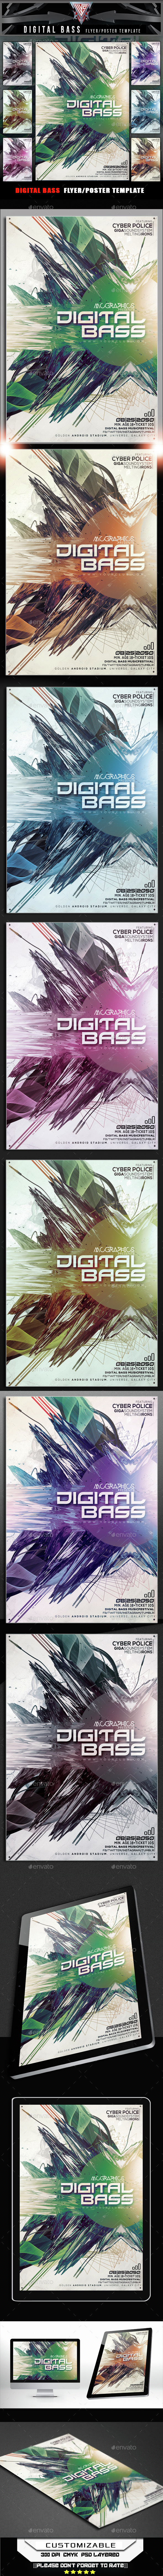 Digital Bass Flyer Template - Flyers Print Templates